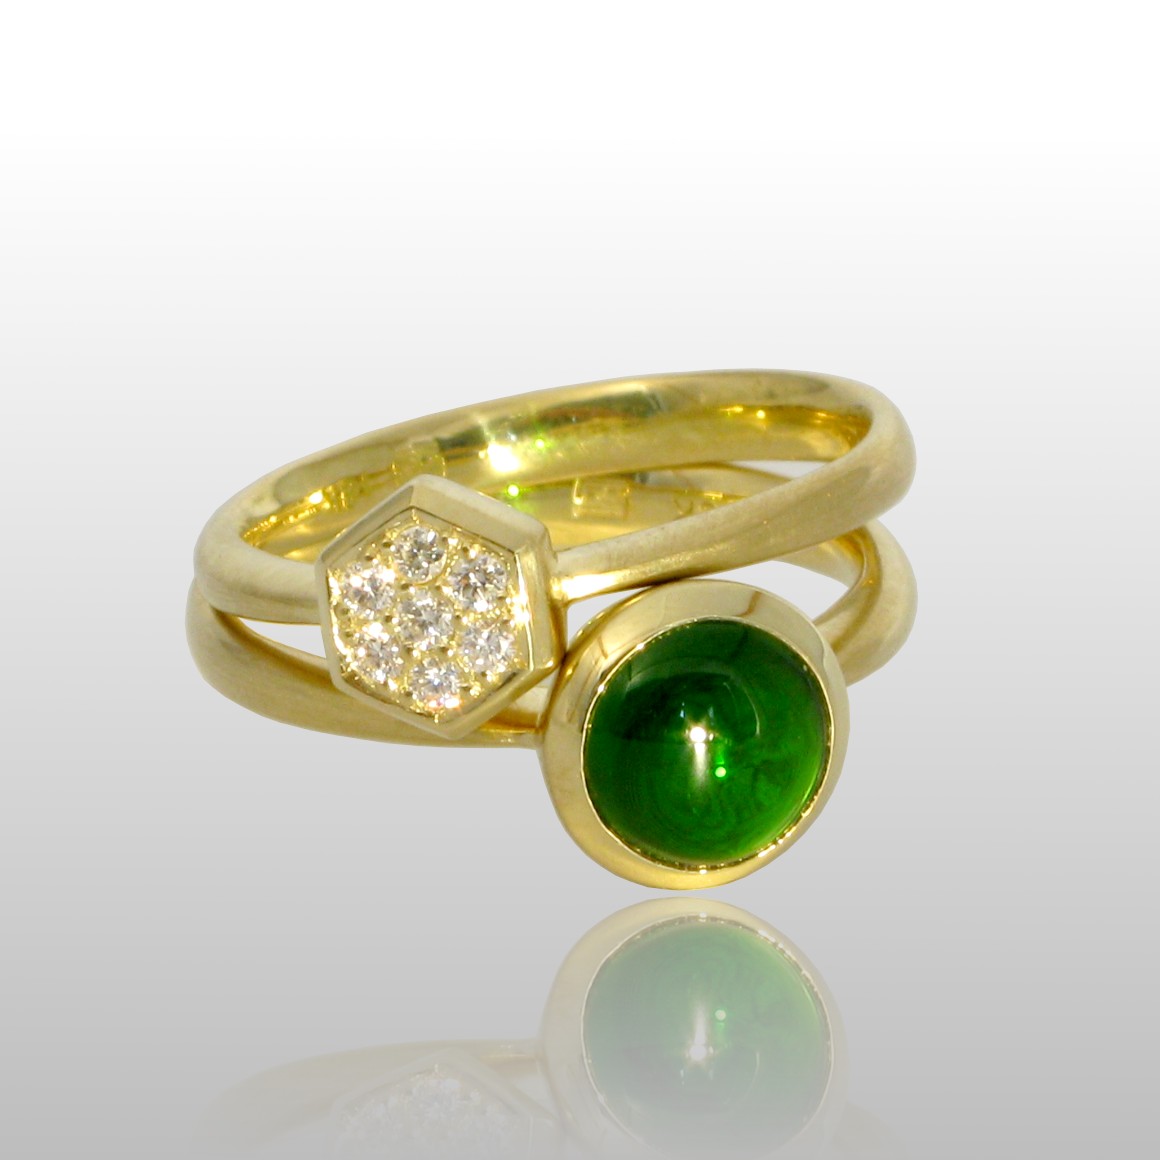 Stackable designer rings in 18k gold 'Stax' with diamond pavé and chrom diopside by Pratima Design Fine Art Jewelry